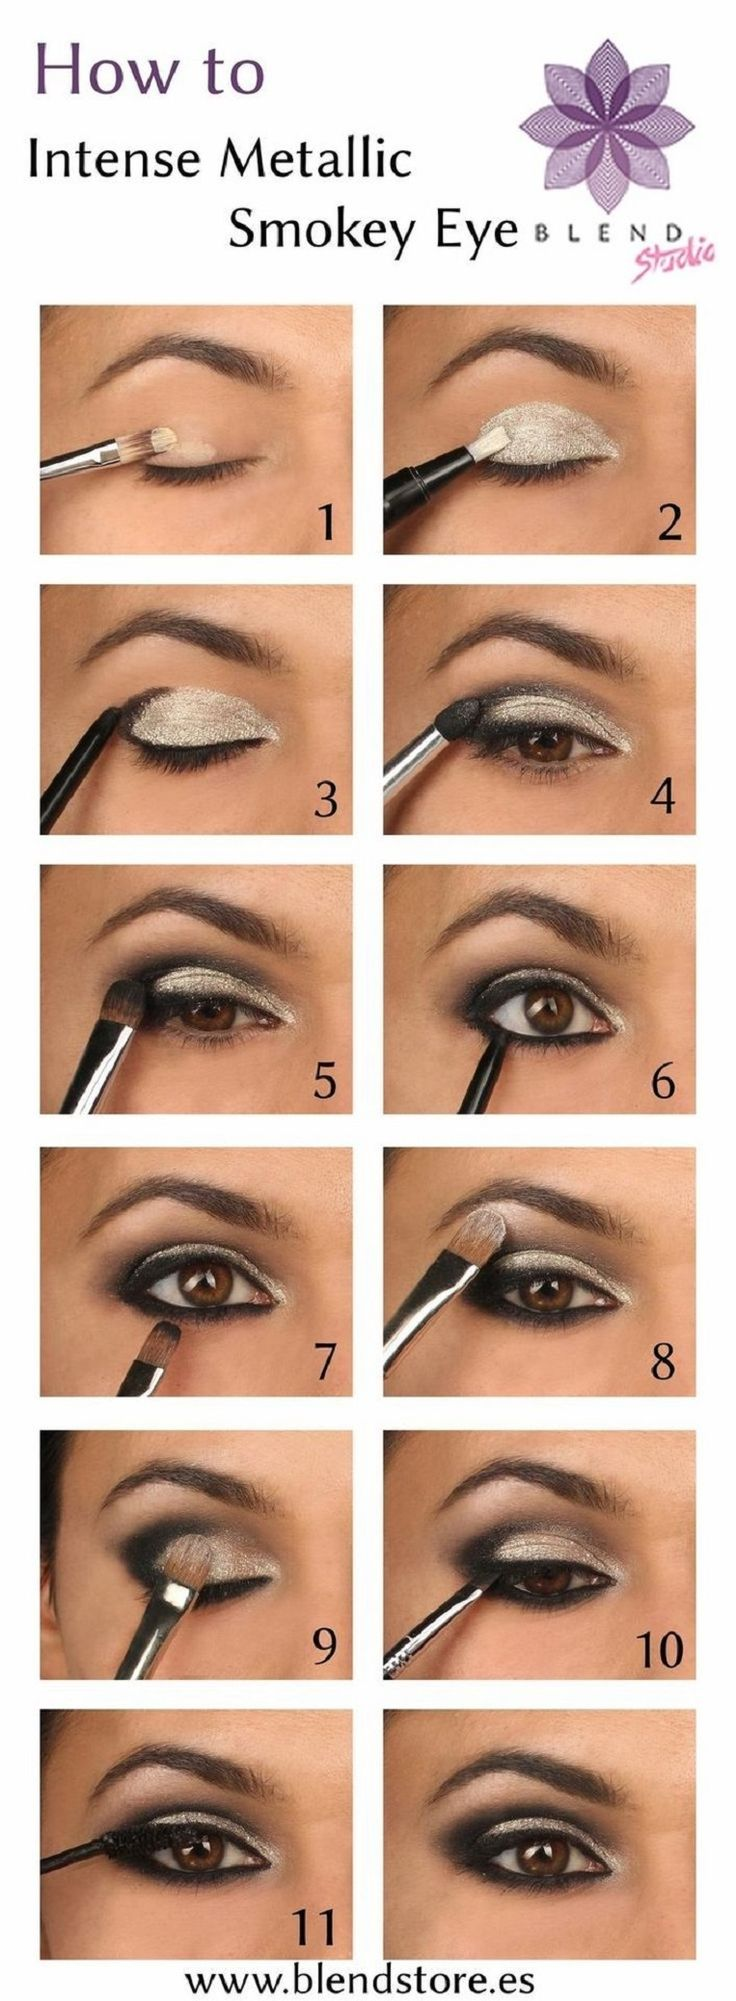 DIY Intense Metallic Smokey Eye - 15 Best Beauty Tutorials for Winter 2014-2015 | Pinterest @kendraaven follow me for more pins like this!